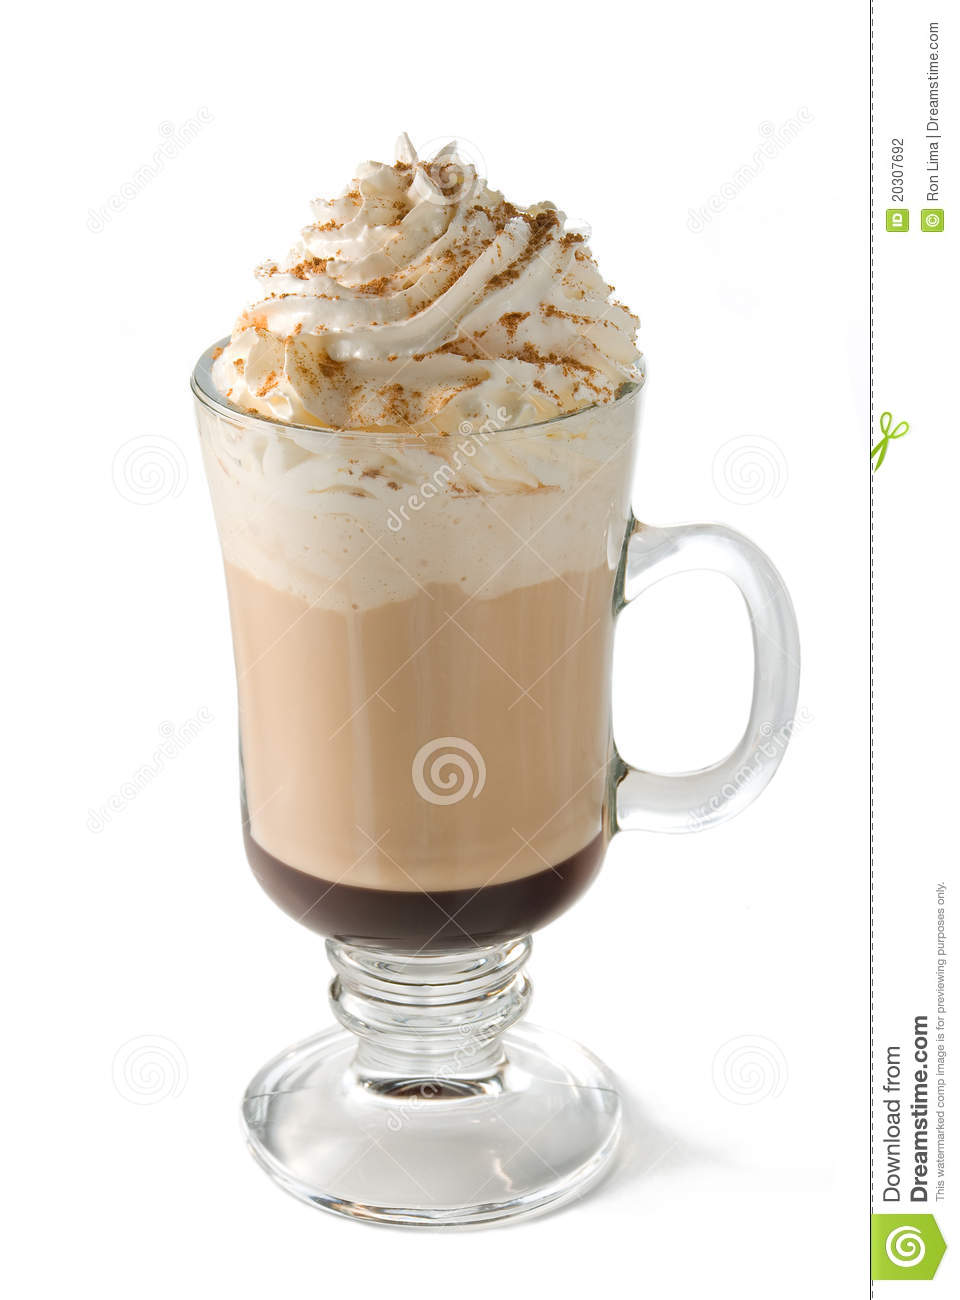 Hot Cafe Mocha Coffee In A Glass Cup Finished With Whipped Cream And